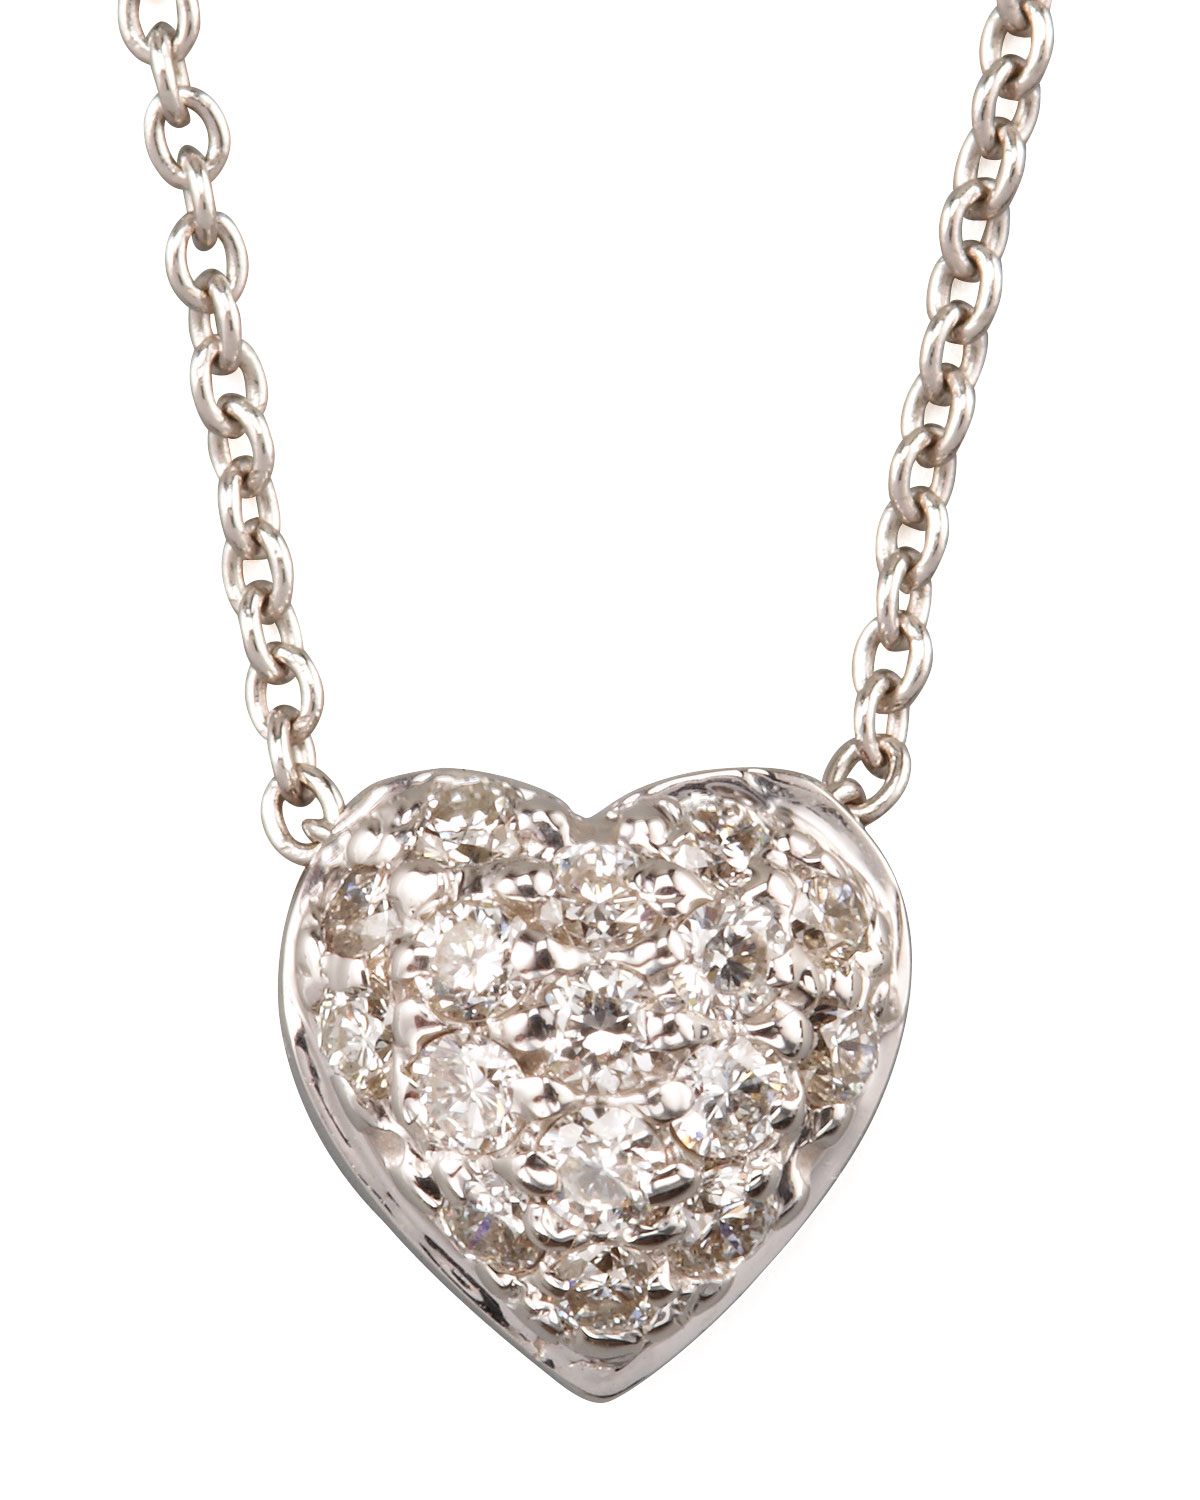 Pave Puffed Heart Necklace